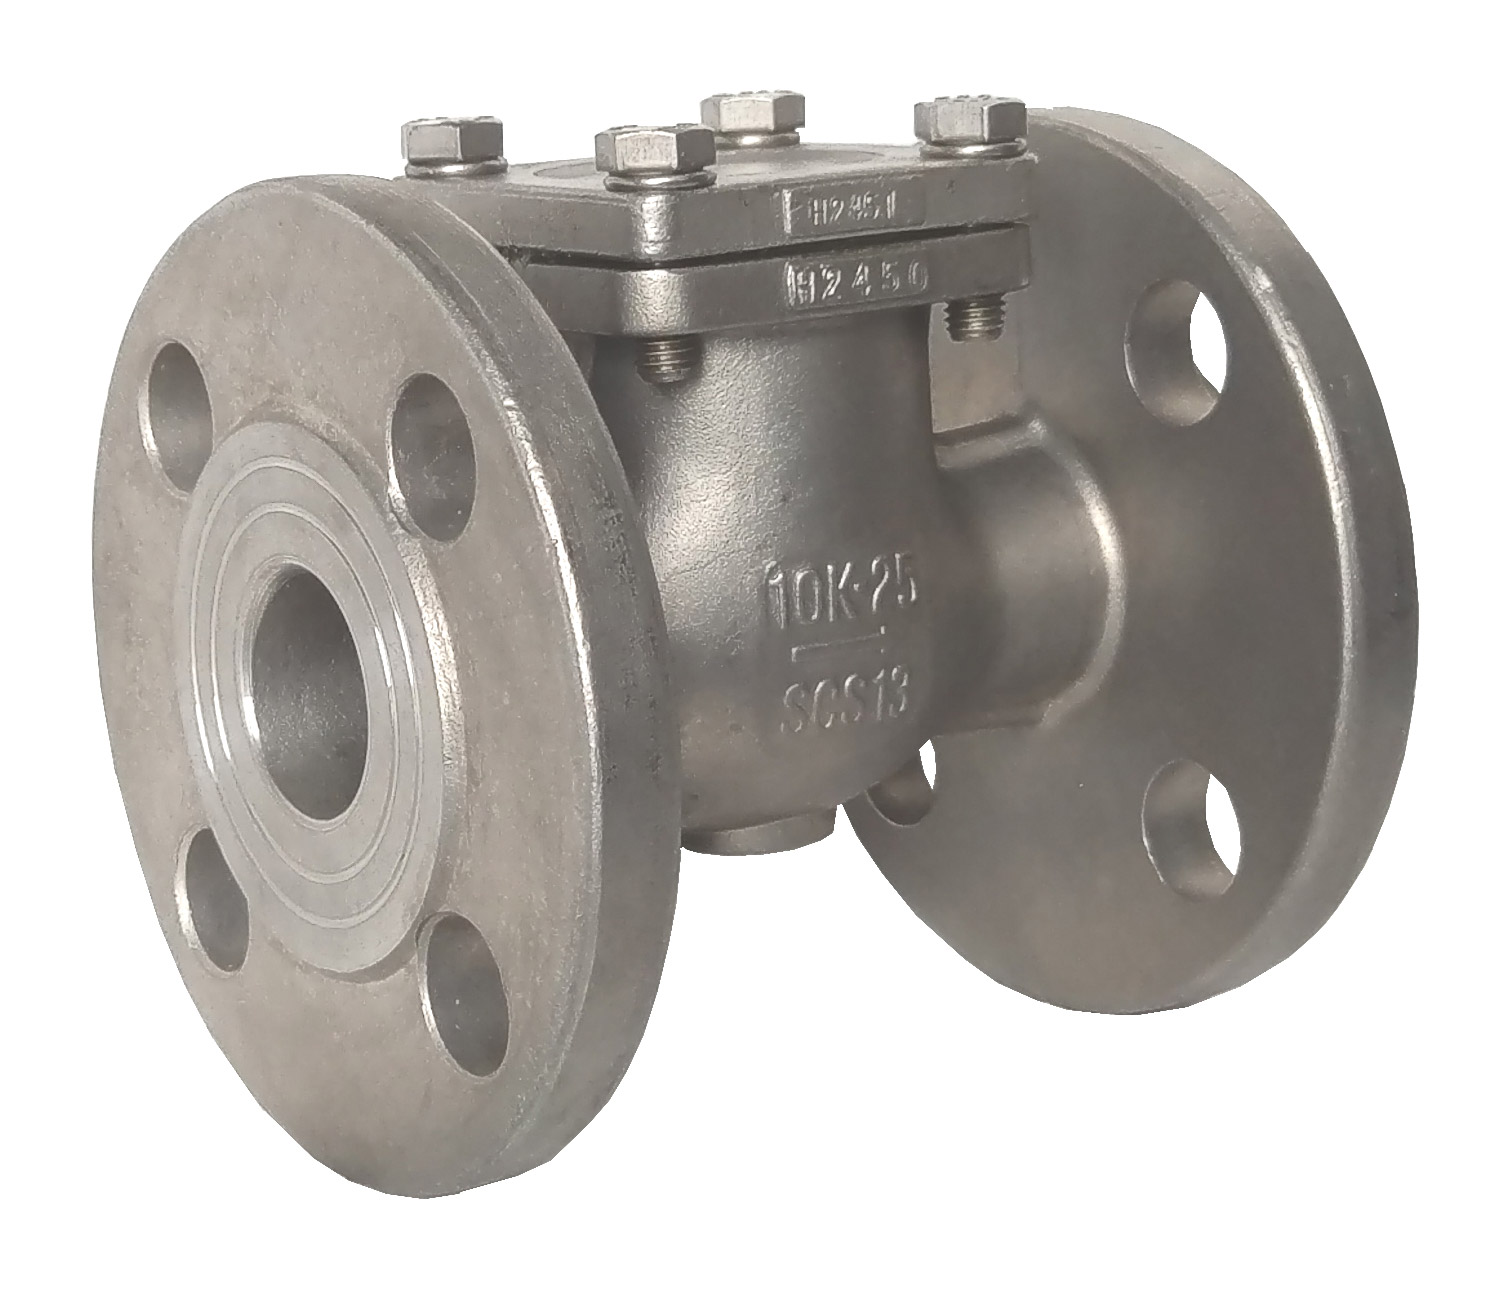 FLANGE END JIS 10K SWING CHECK VALVE